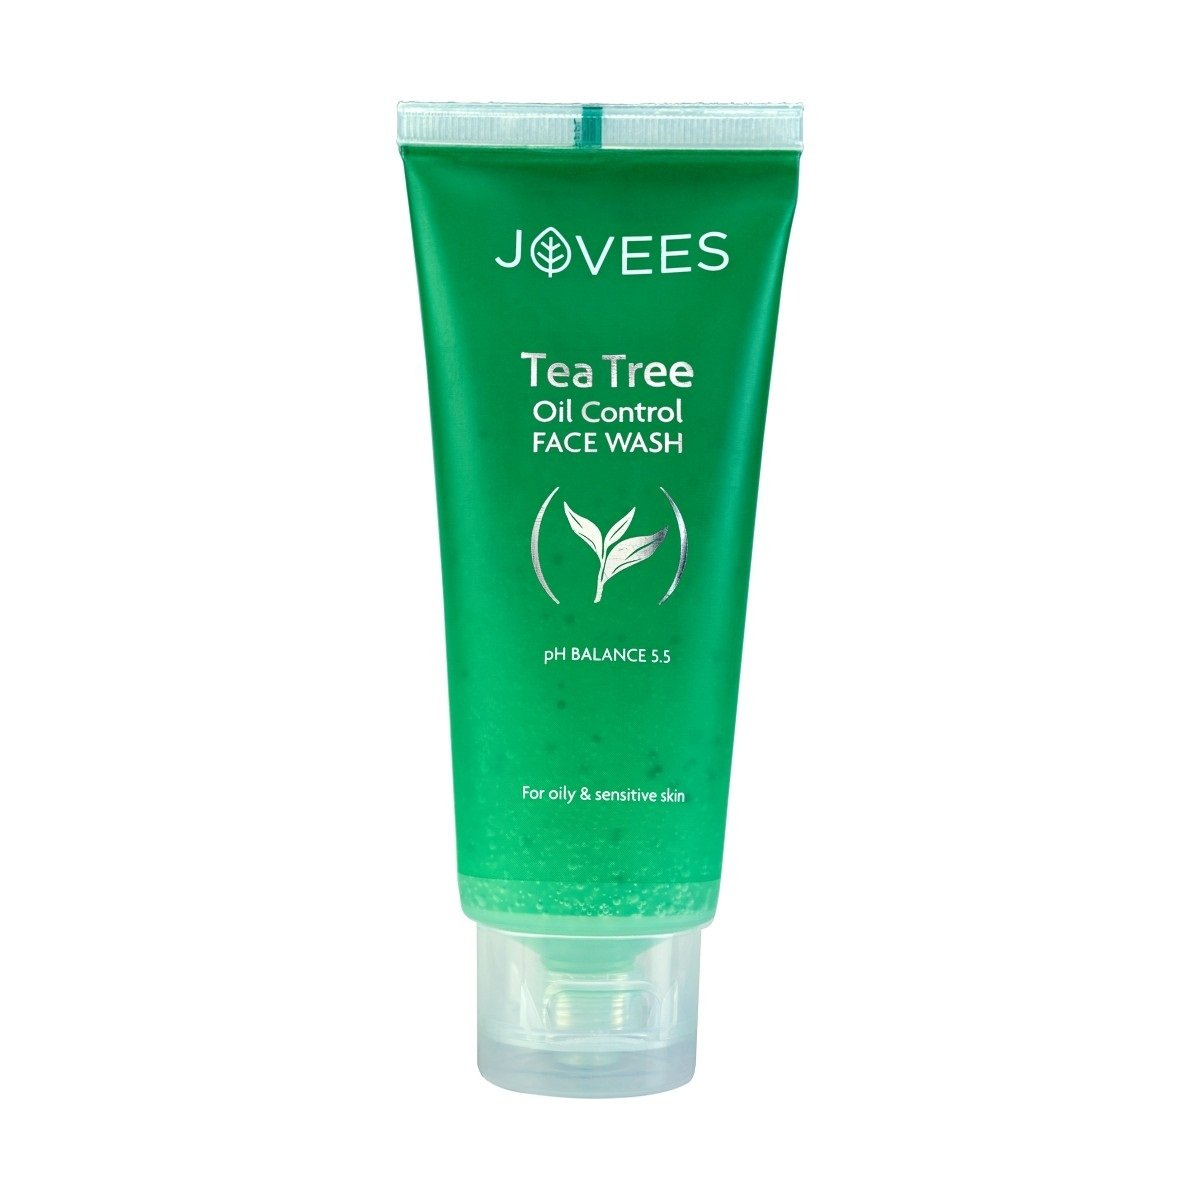 Jovees Tea Tree Face Wash